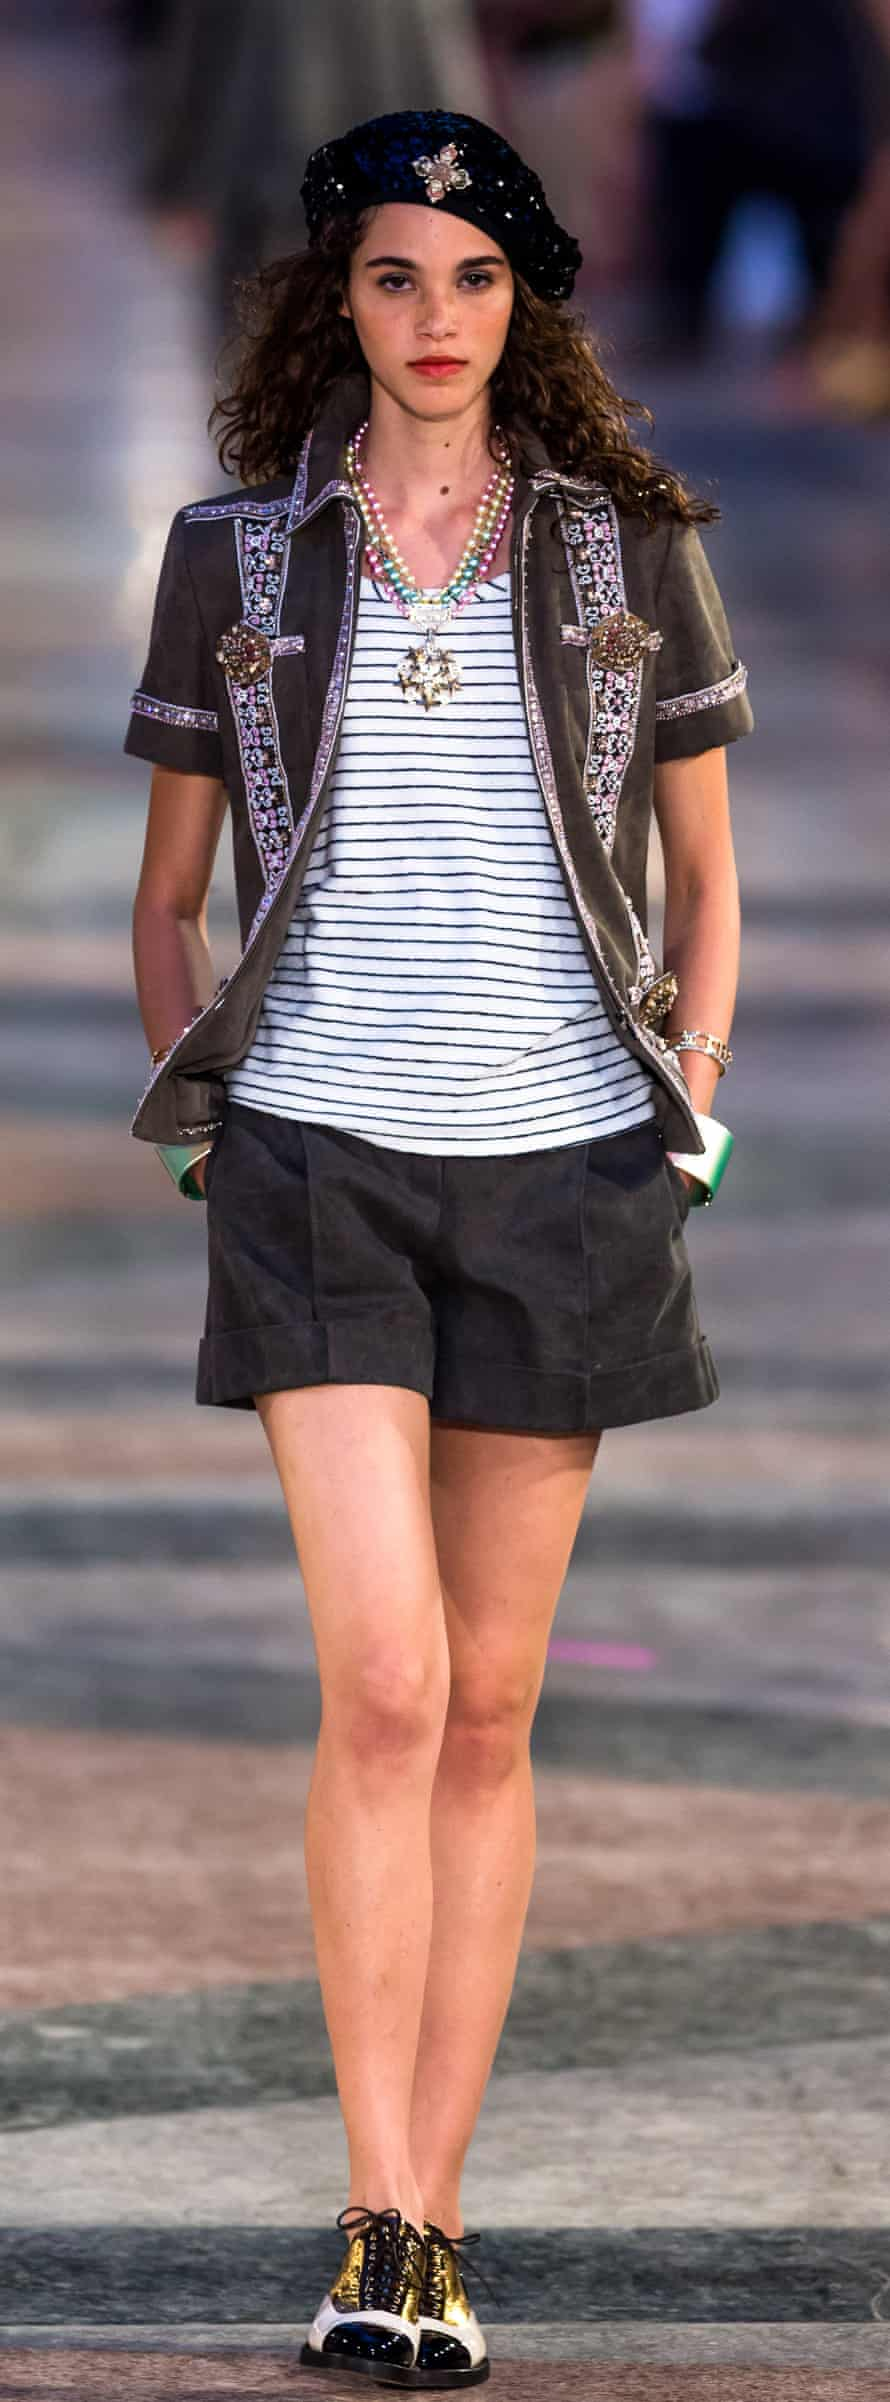 A model wears a Che inspired beret on the catwalk at the Chanel fashion show.